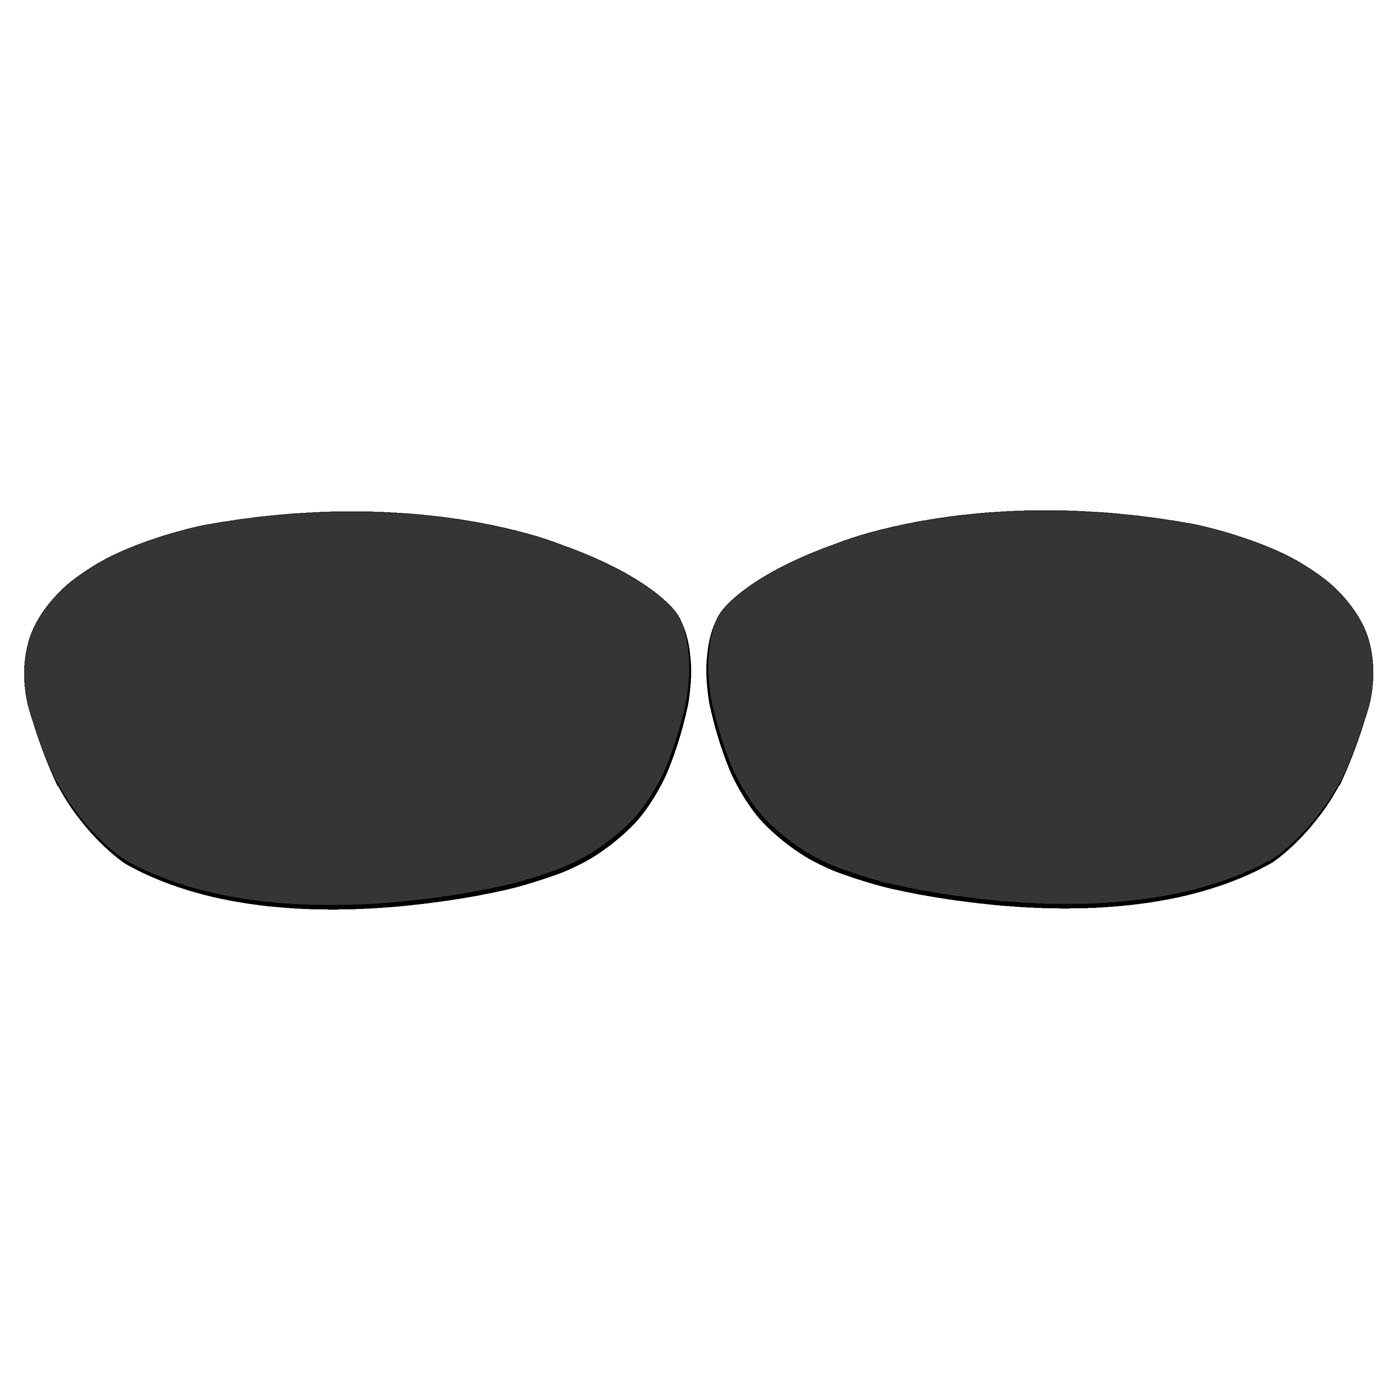 ACOMPATIBLE Replacement Lenses for Oakley Fives 2.0 Sunglasses